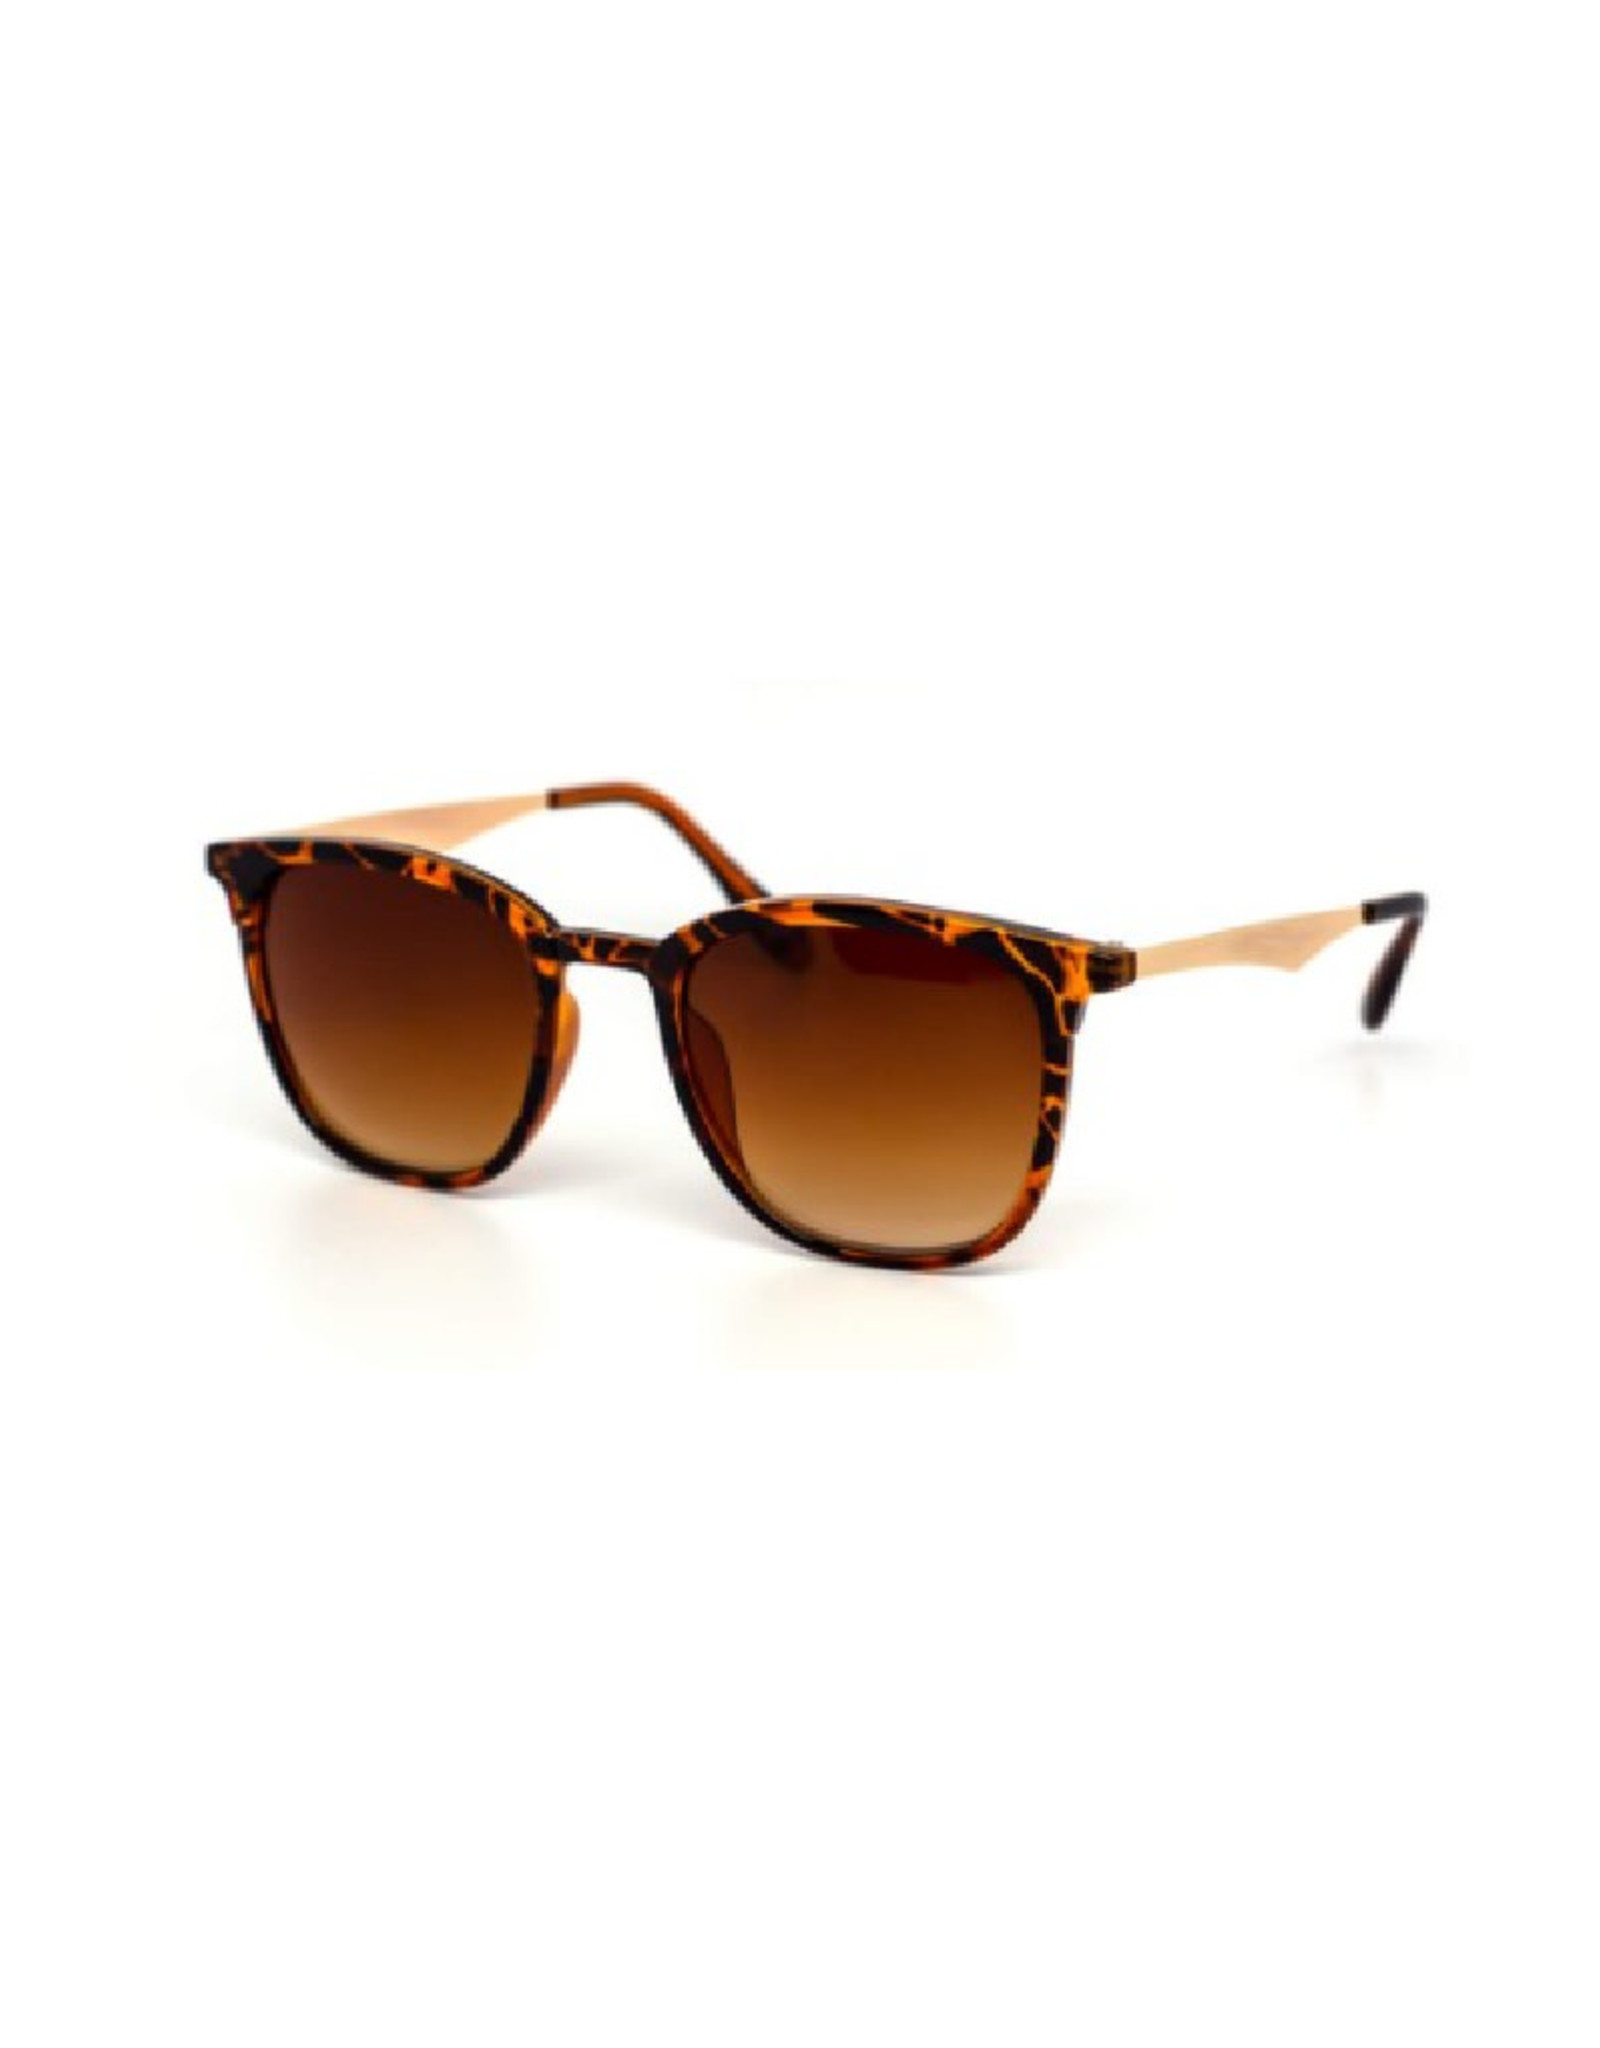 Sunglasses - Tortoise Frames with Light Temples